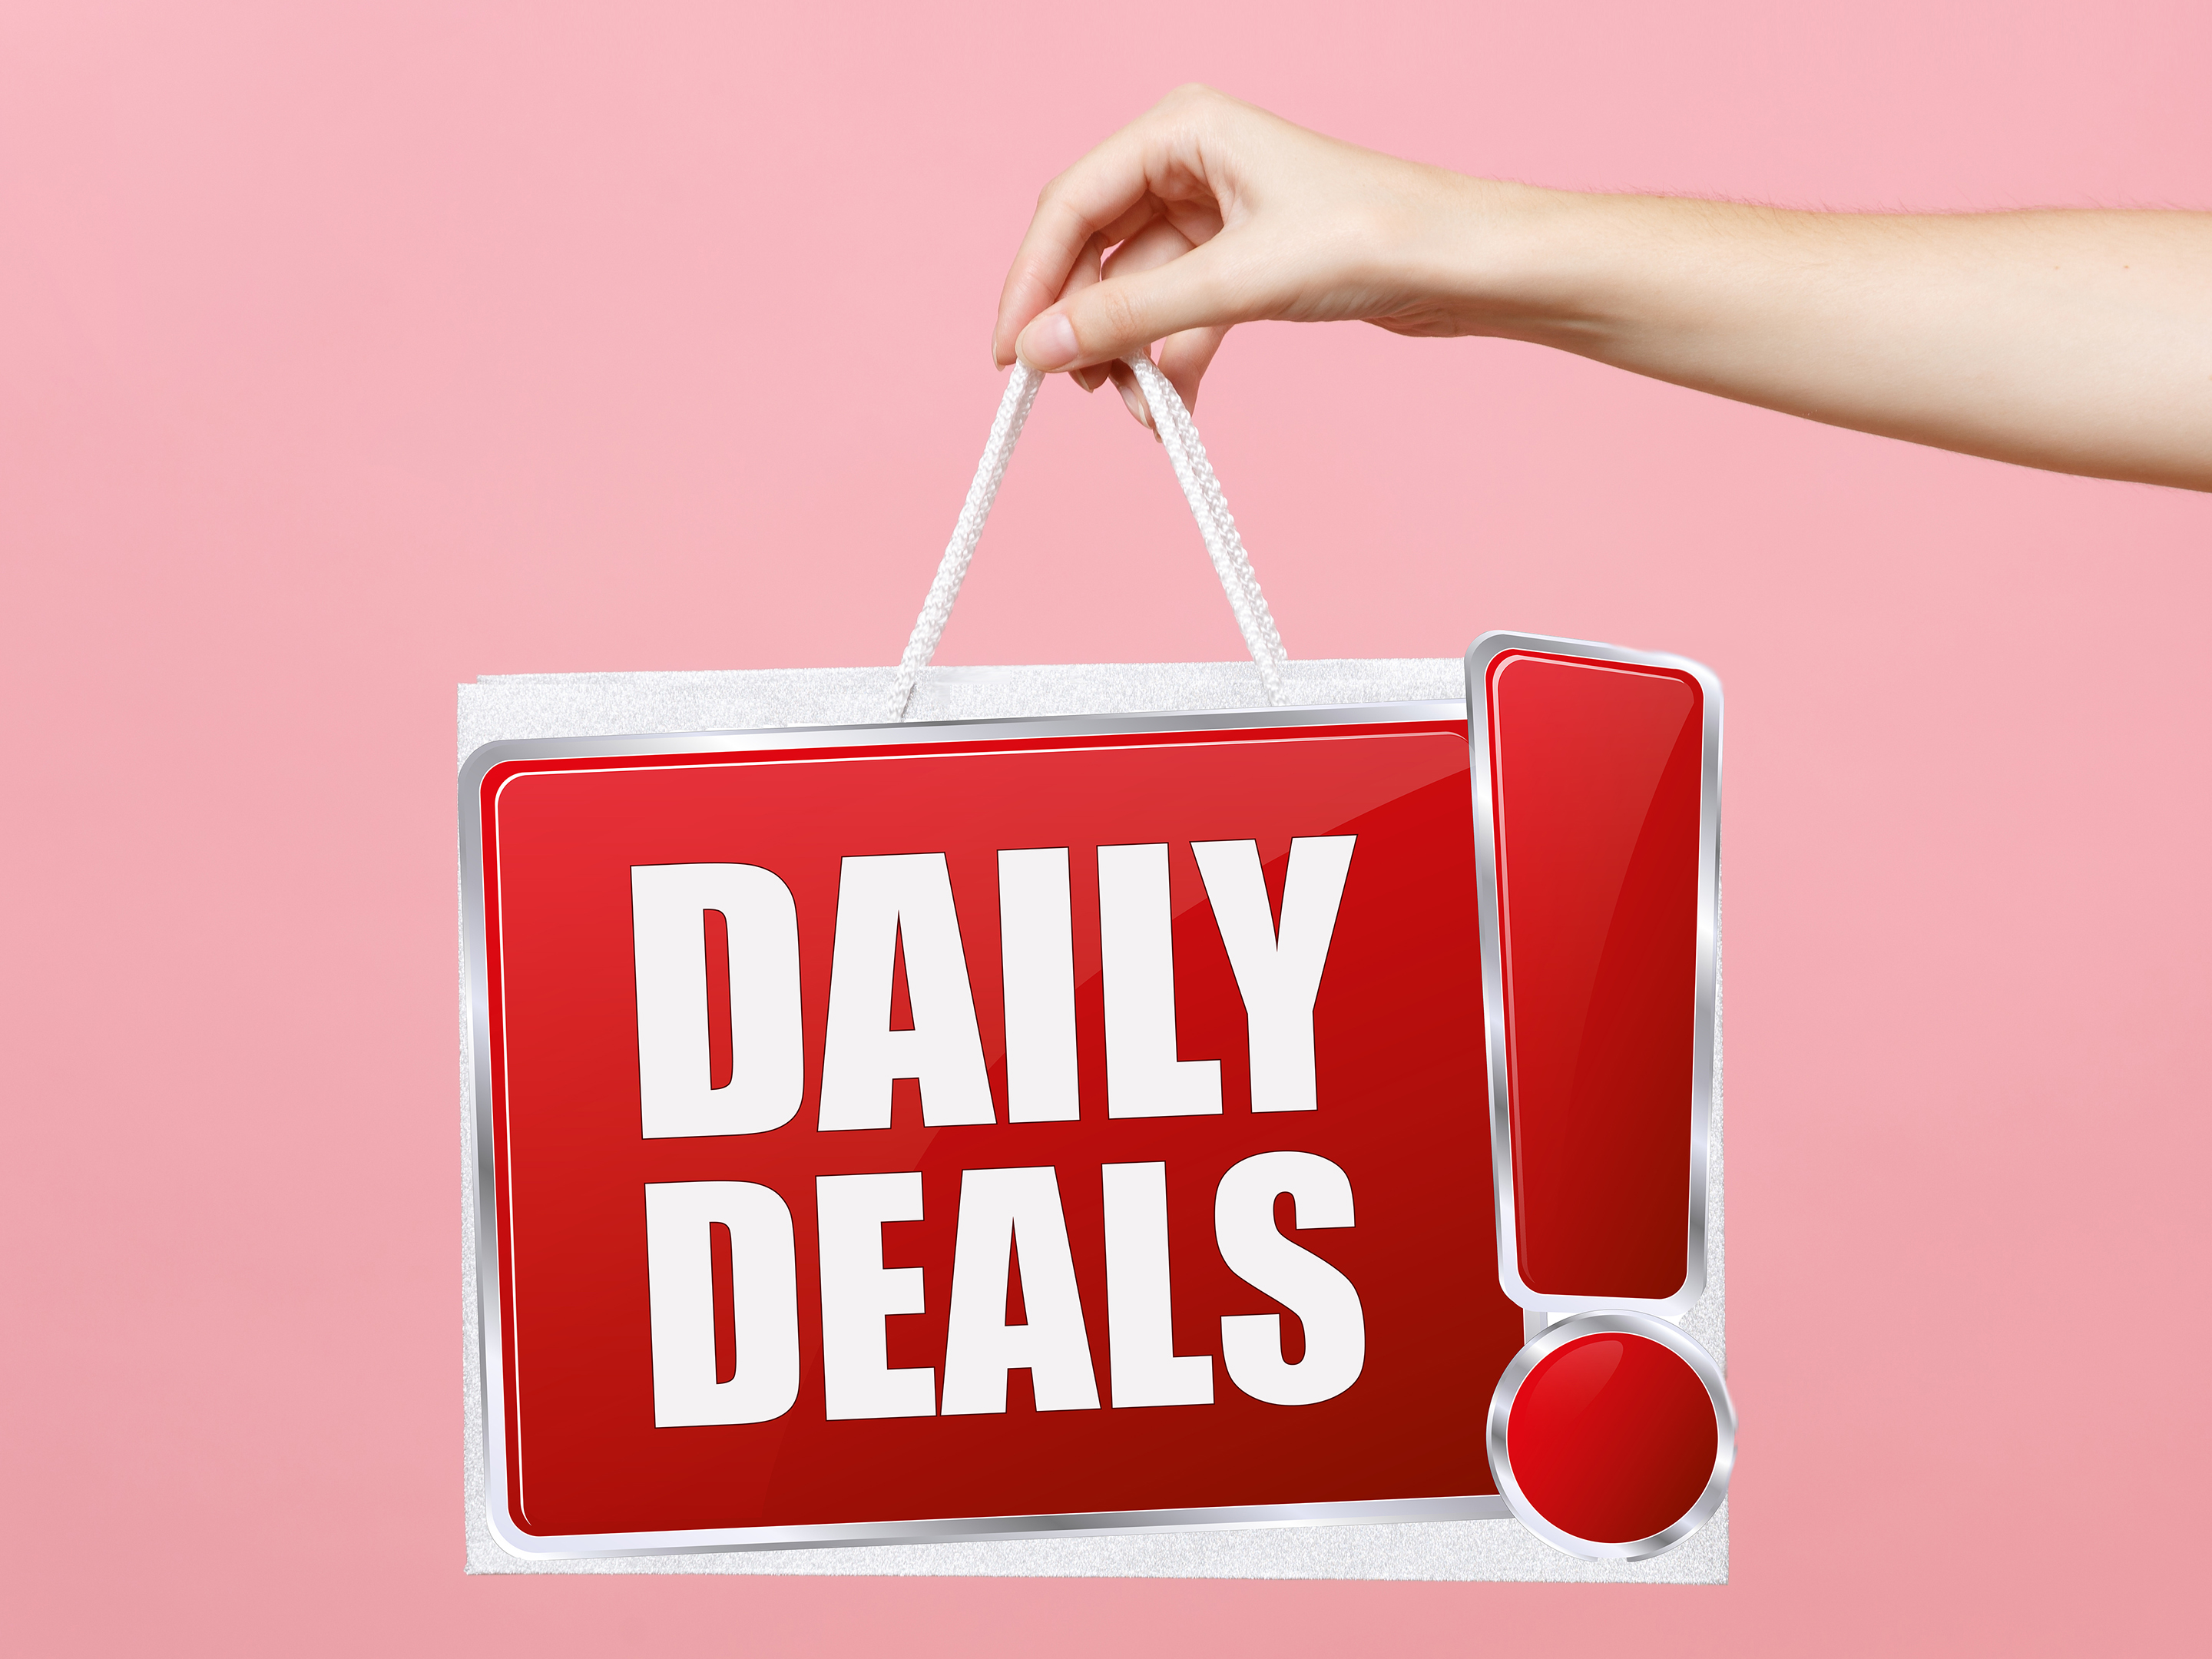 daily deals, clearance sale, specials spa, facial, aesthetic, medical equipment sale, salon equipment sale